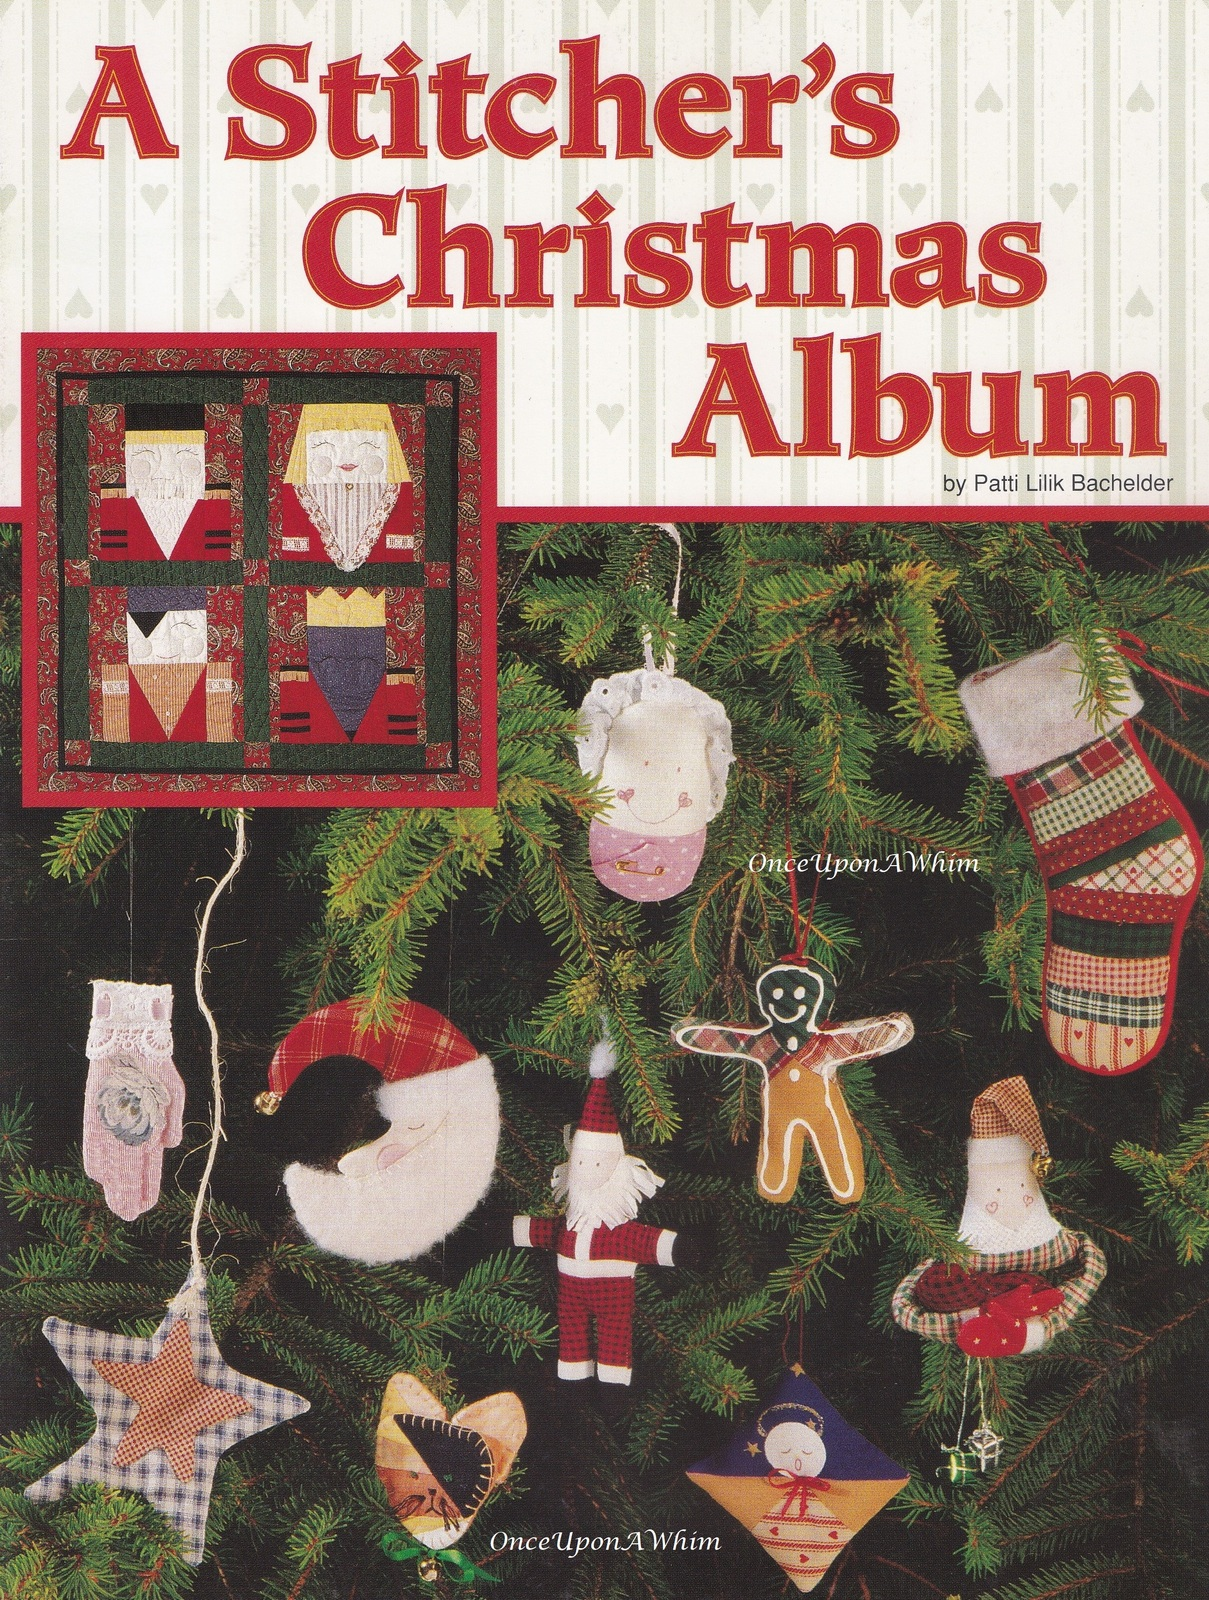 Primary image for A Stitcher's Christmas Album, A Stitcher's Christmas Album, Patti Bachelder Holi